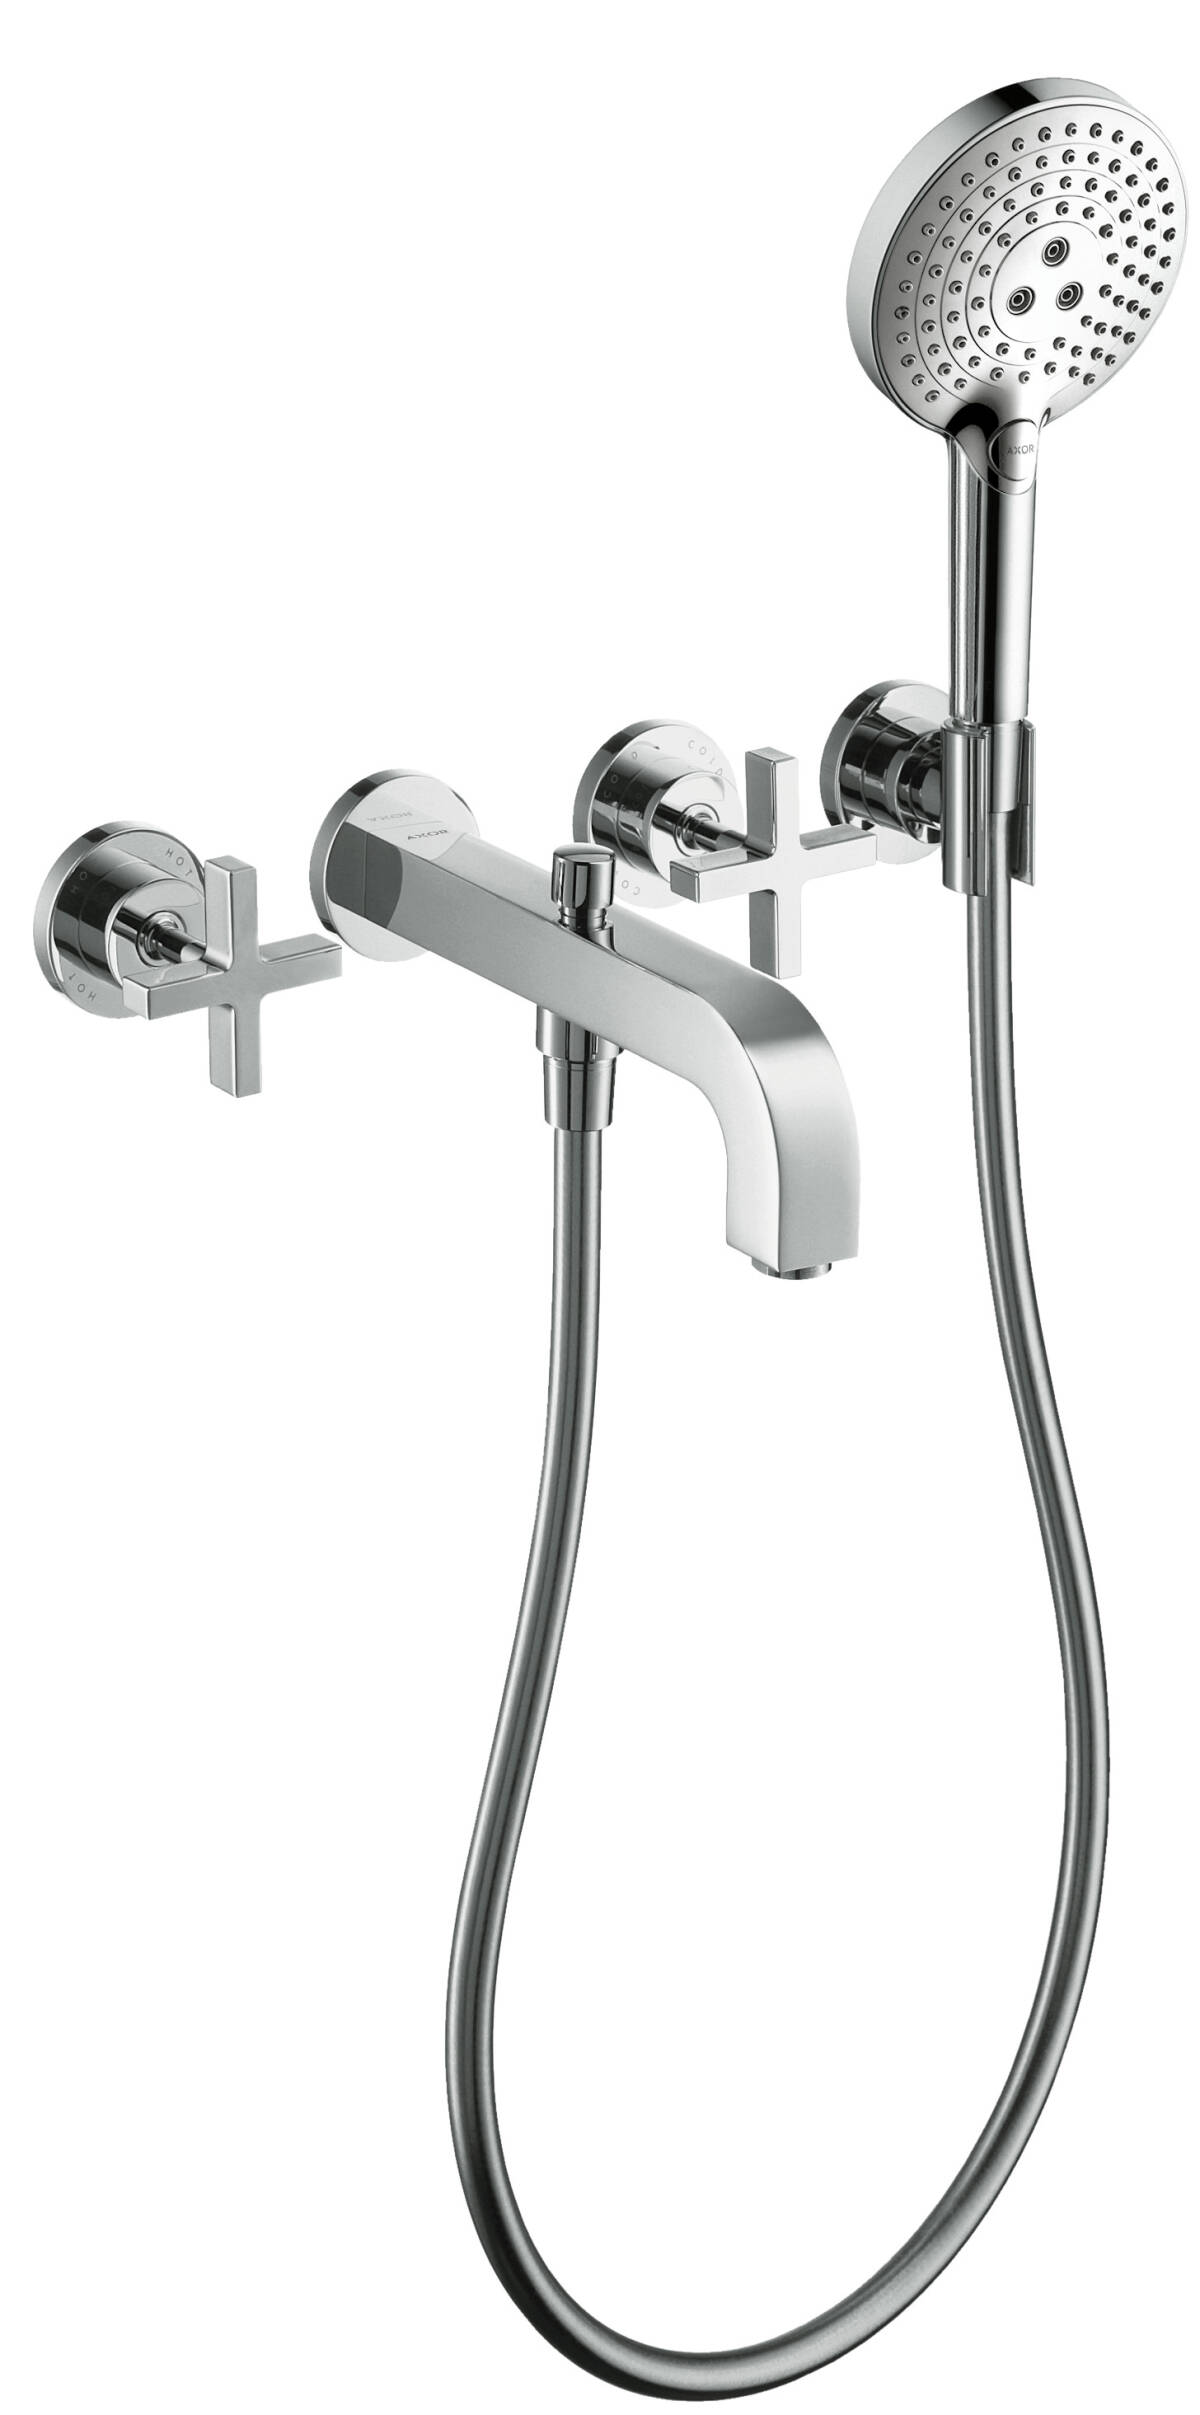 3-hole bath mixer for concealed installation wall-mounted with cross handles and escutcheons, Chrome, 39447000